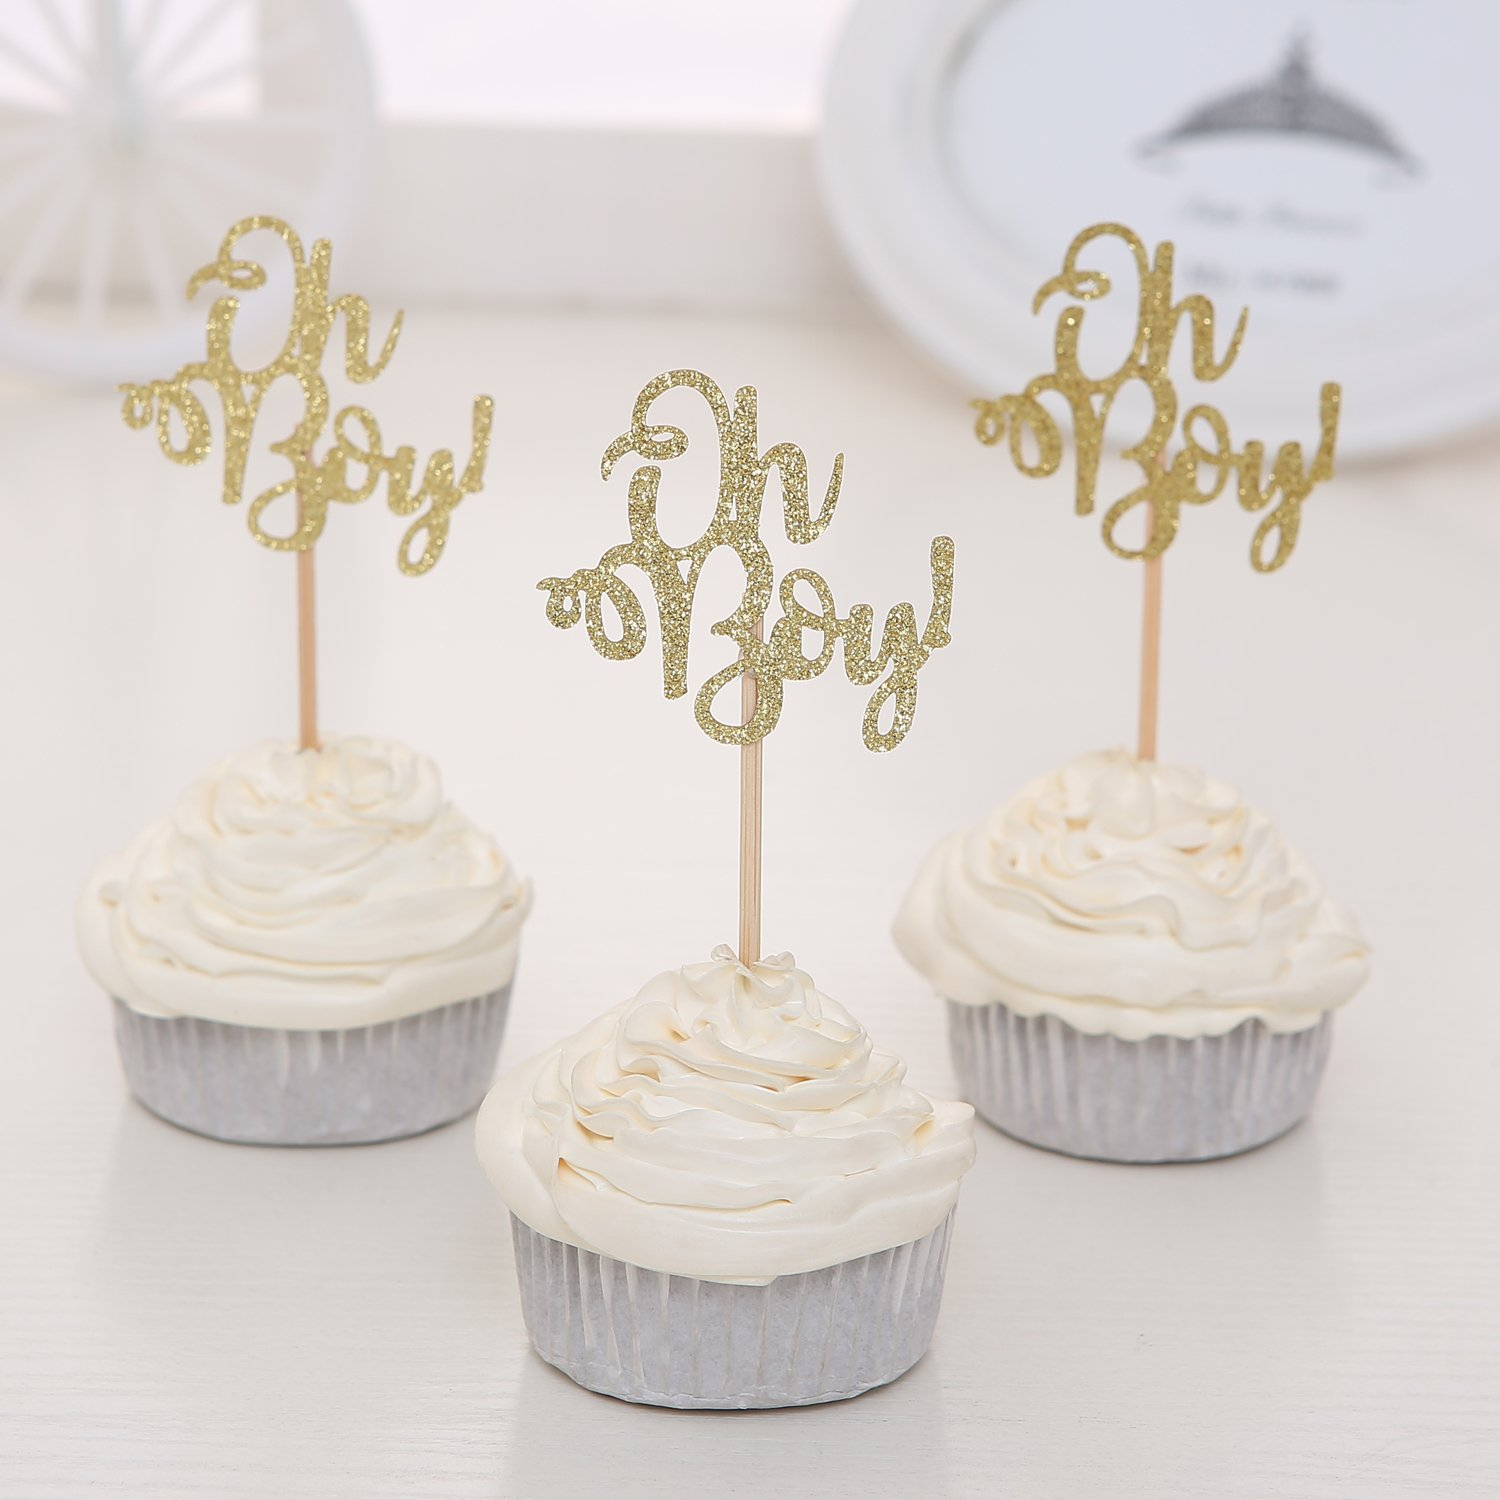 Giuffi Set of 24 Golden Oh Boy Cupcake Toppers Party Decors Baby Shower Decors - by